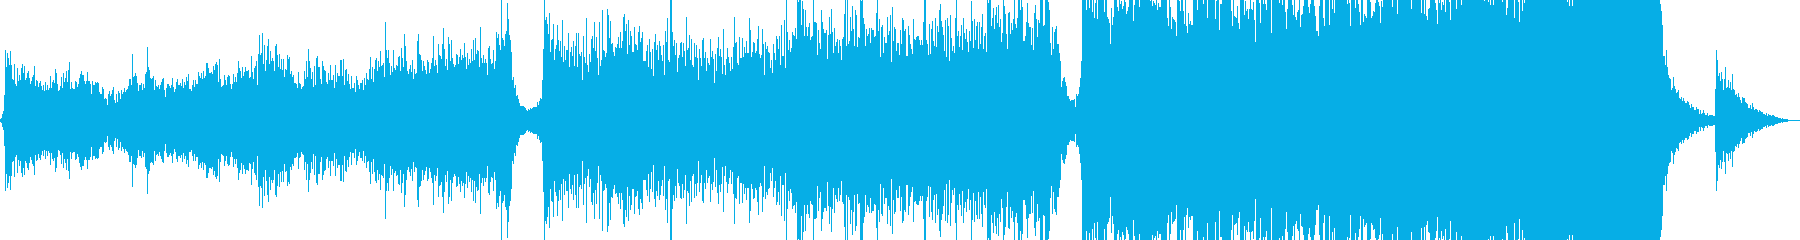 Movie background's reproduced waveform